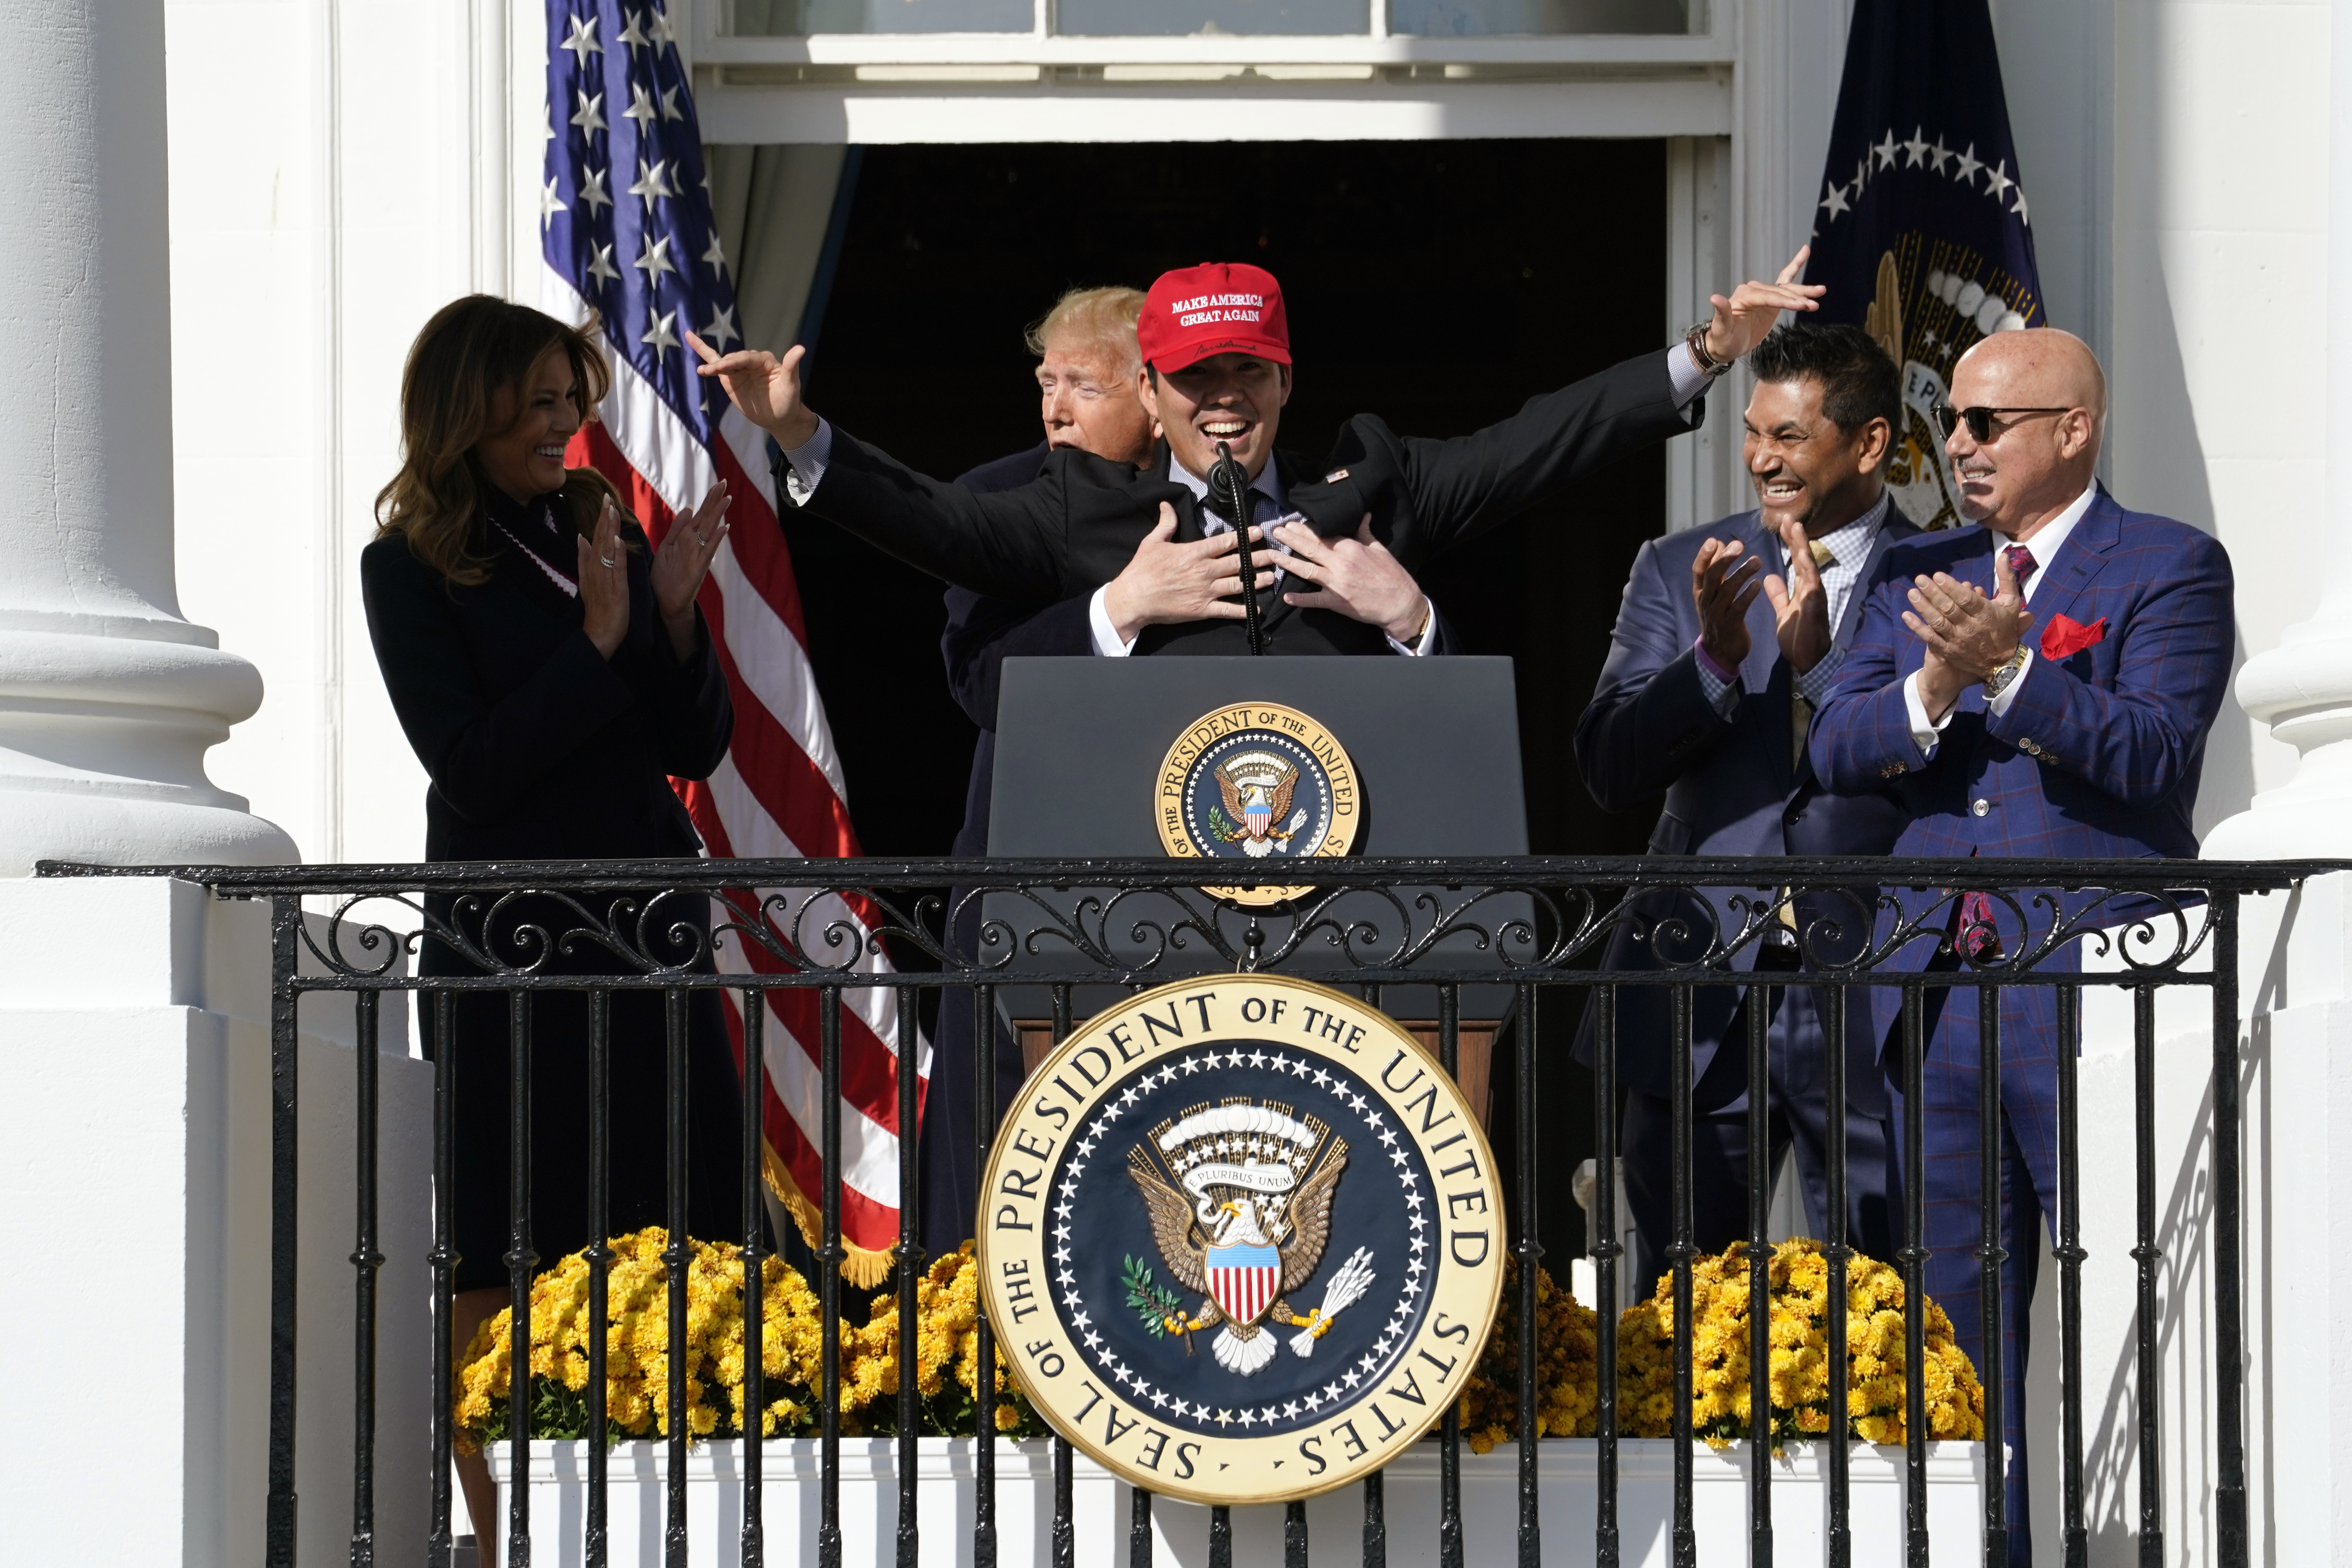 """Catcher Kurt Suzuki wears a """"Make America Great Again"""" hat as he is hugged by President Trump as he welcomes the 2019 World Series Champions, the Washington Nationals, to the White House"""